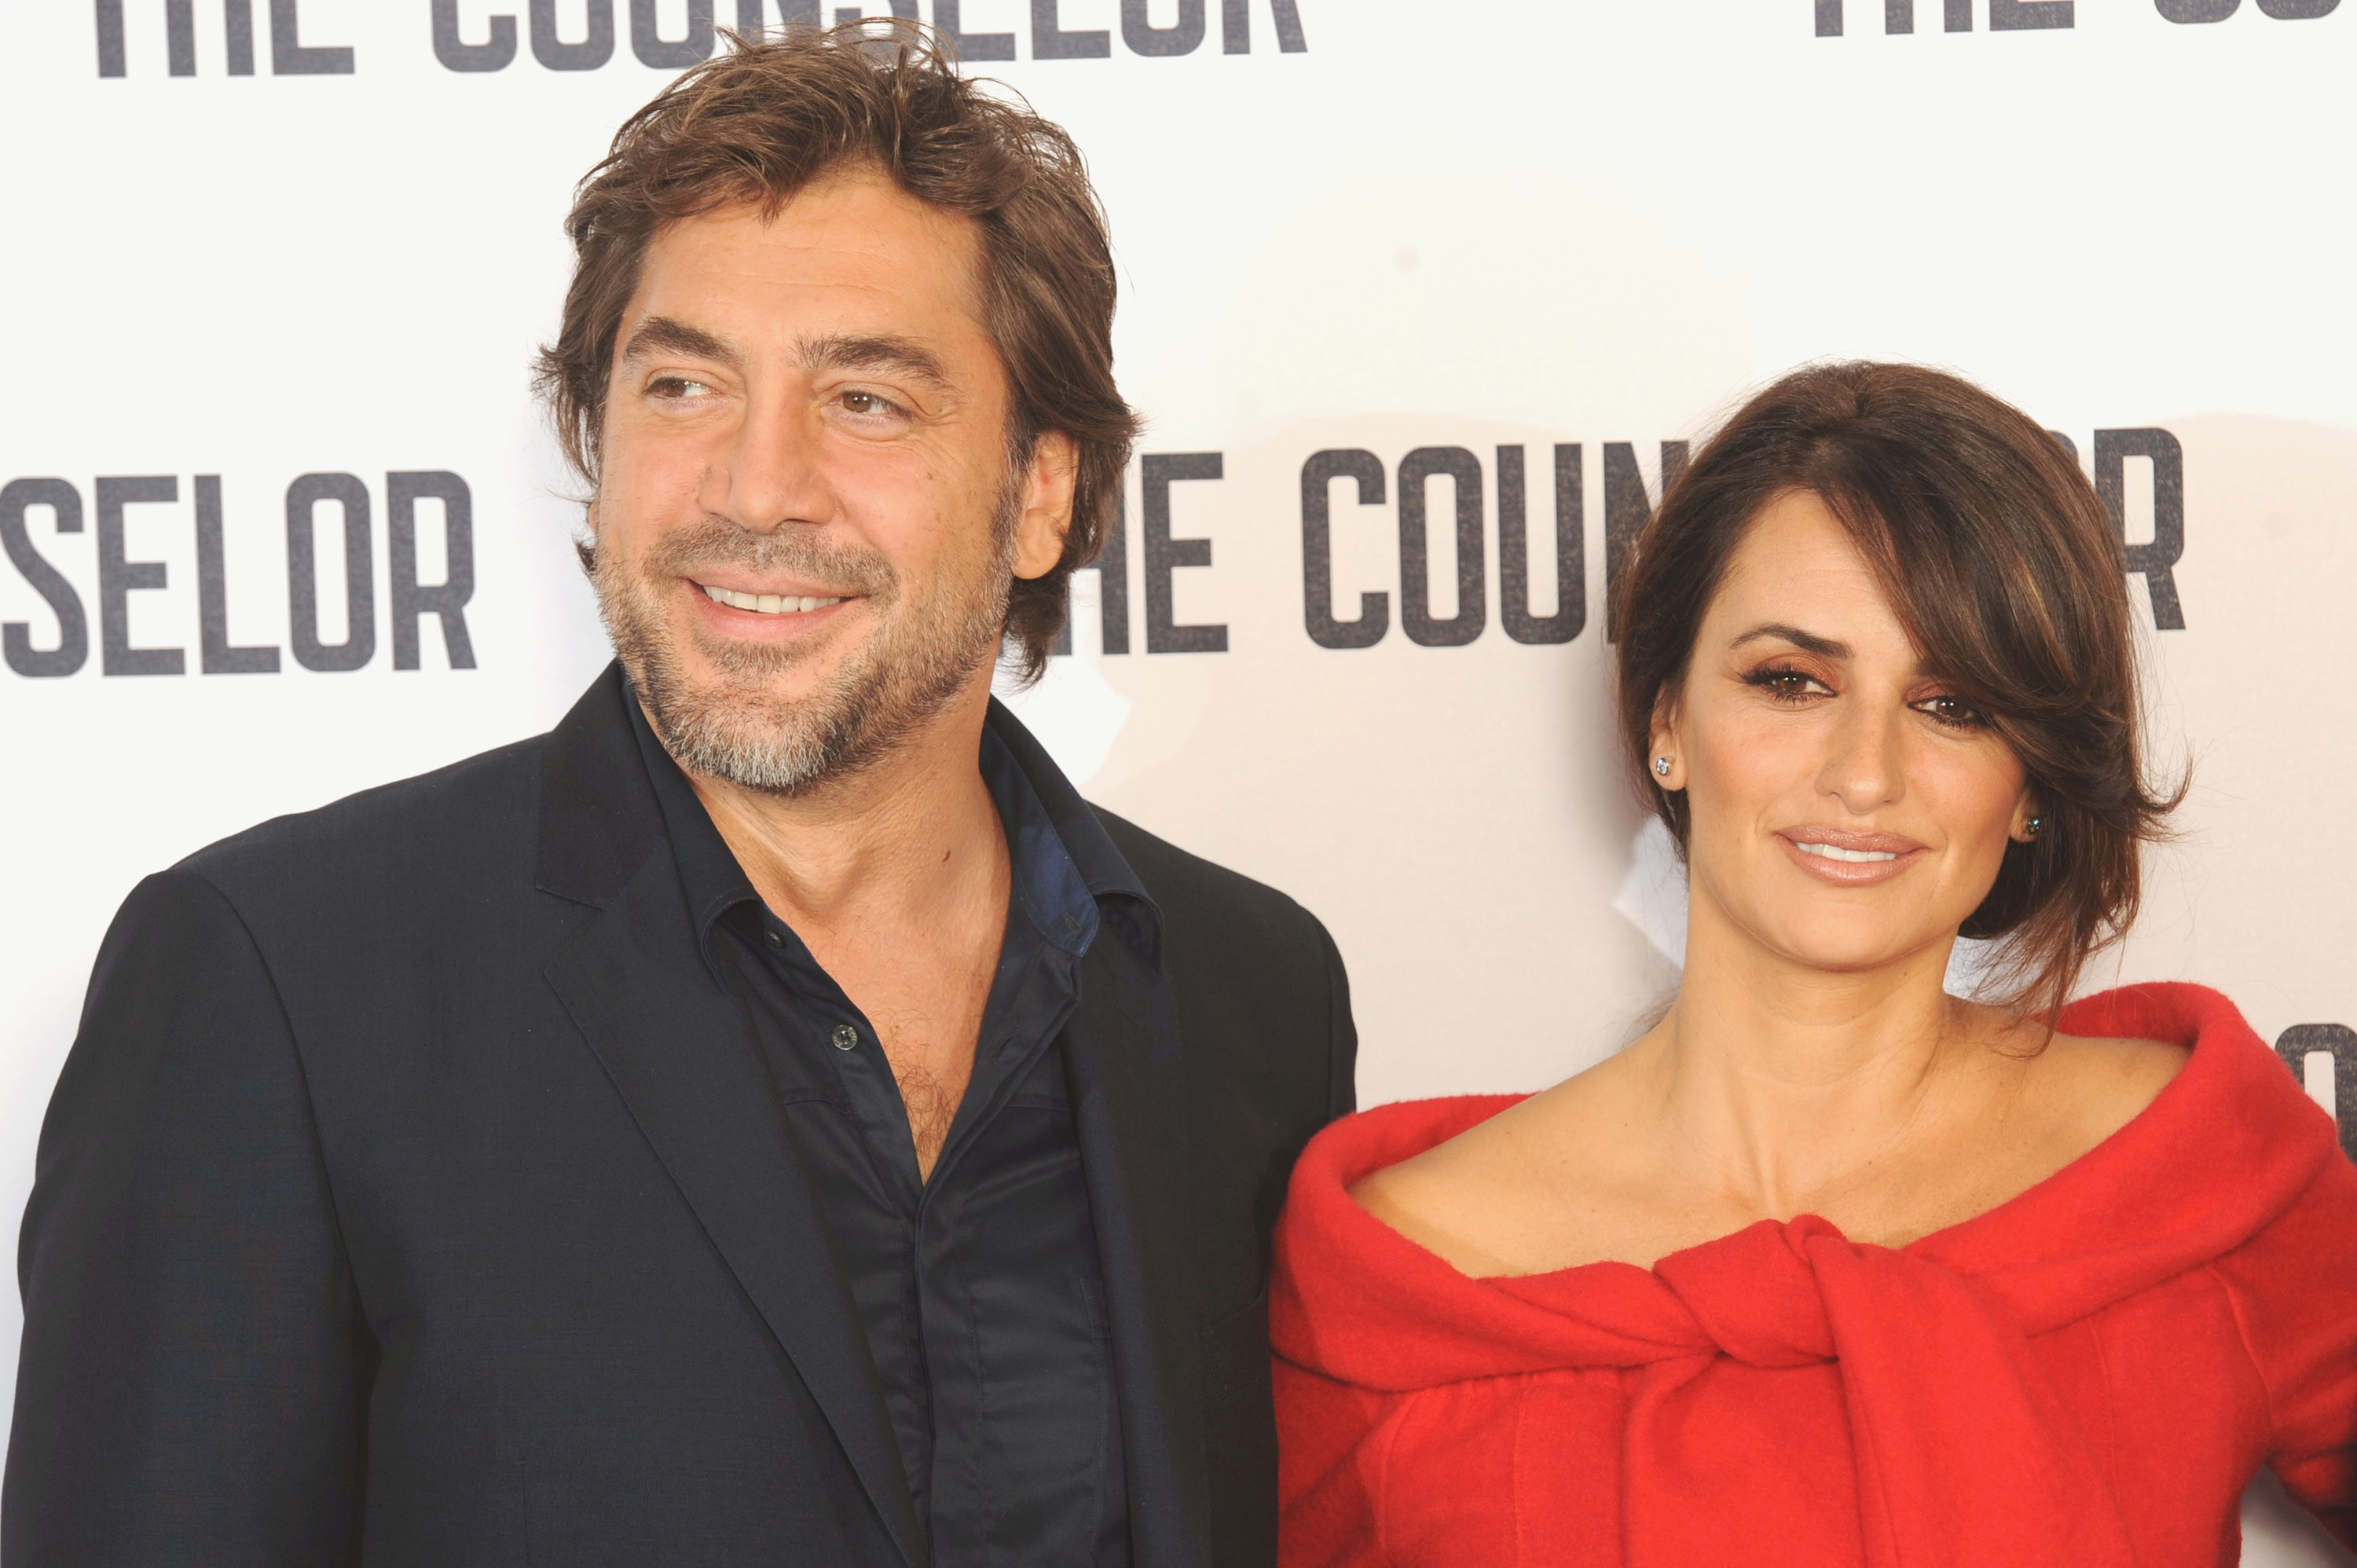 Javier Bardem and Penelope Cruz attend a photocall for The Counselor at The Dorchester